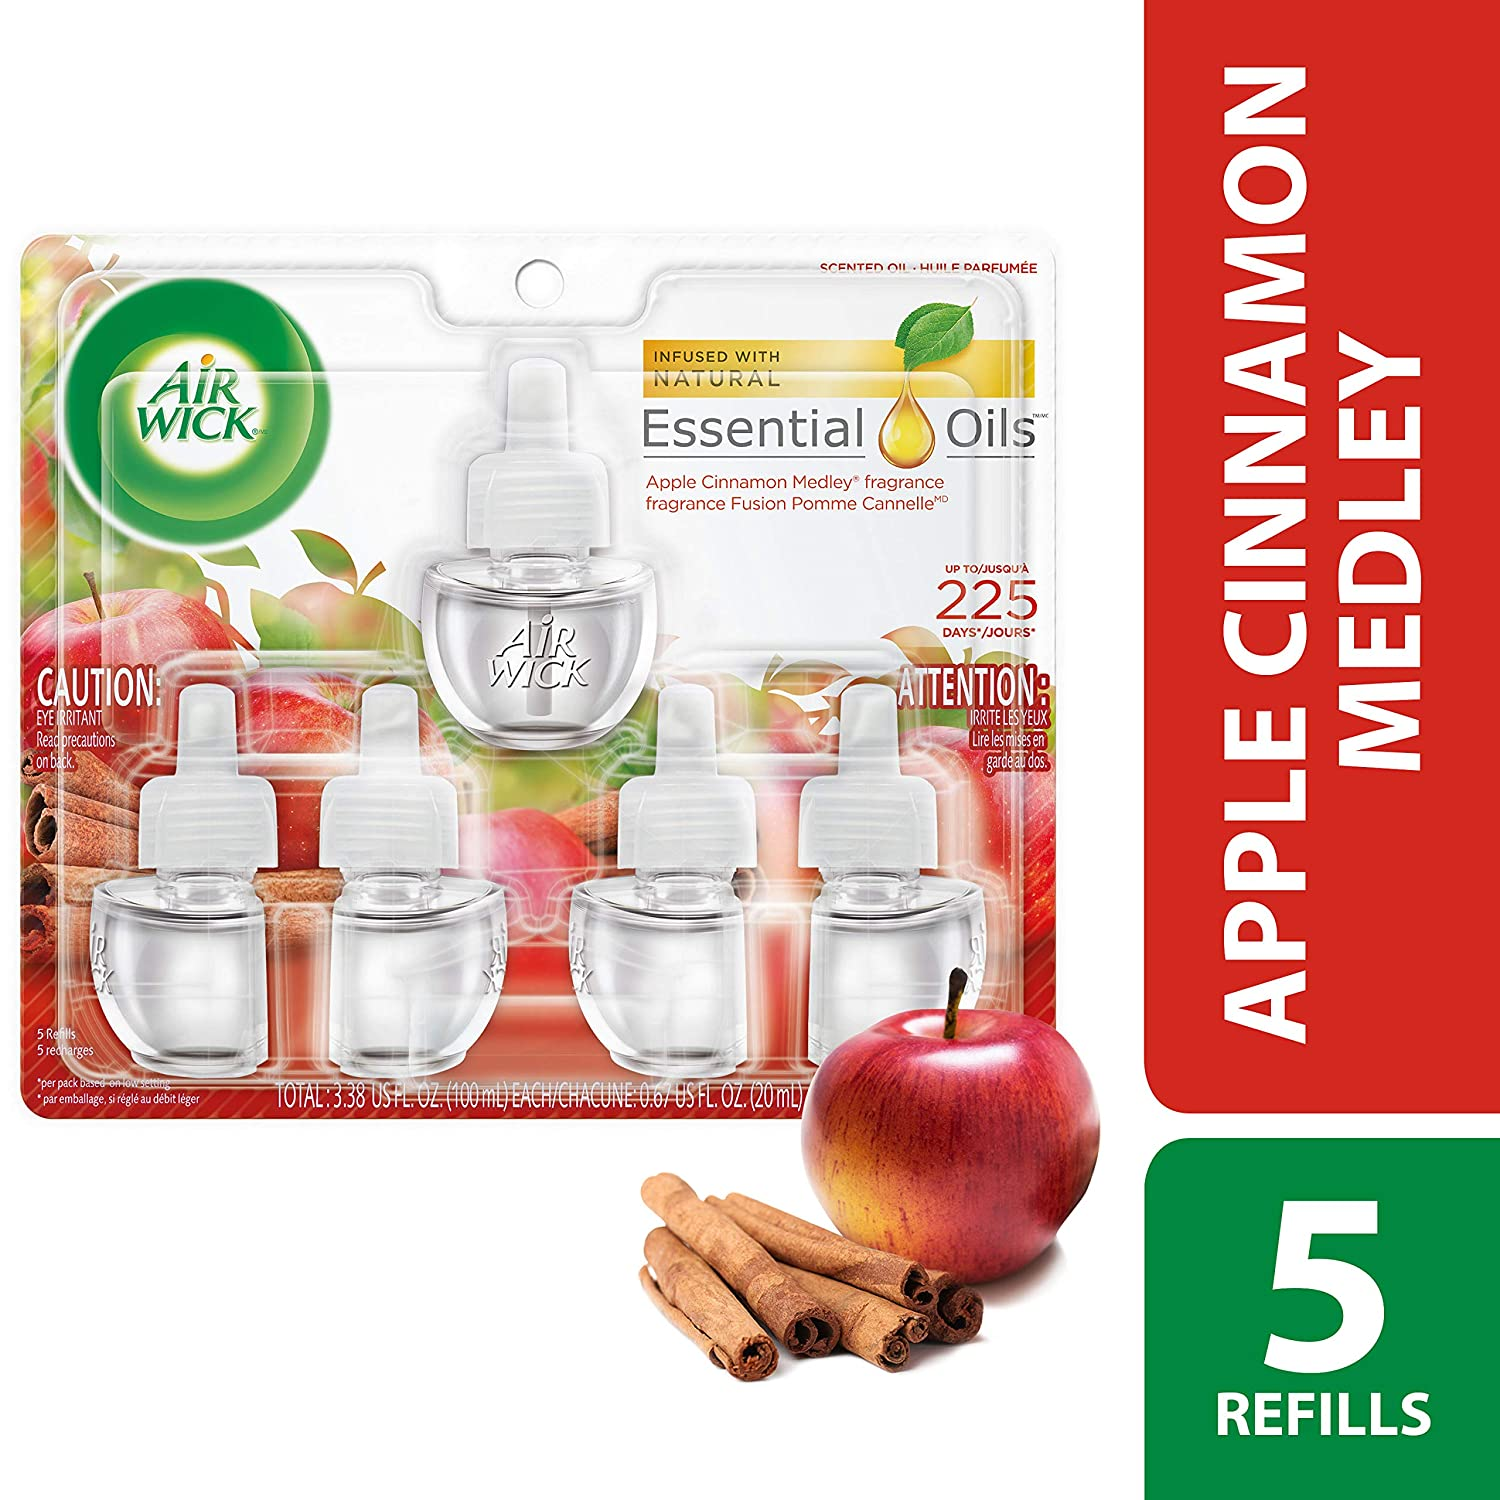 Air Wick Scented Oil 5 Refills, Apple Cinnamon Medley, Each 0.67 fl. oz. H&PC-74507